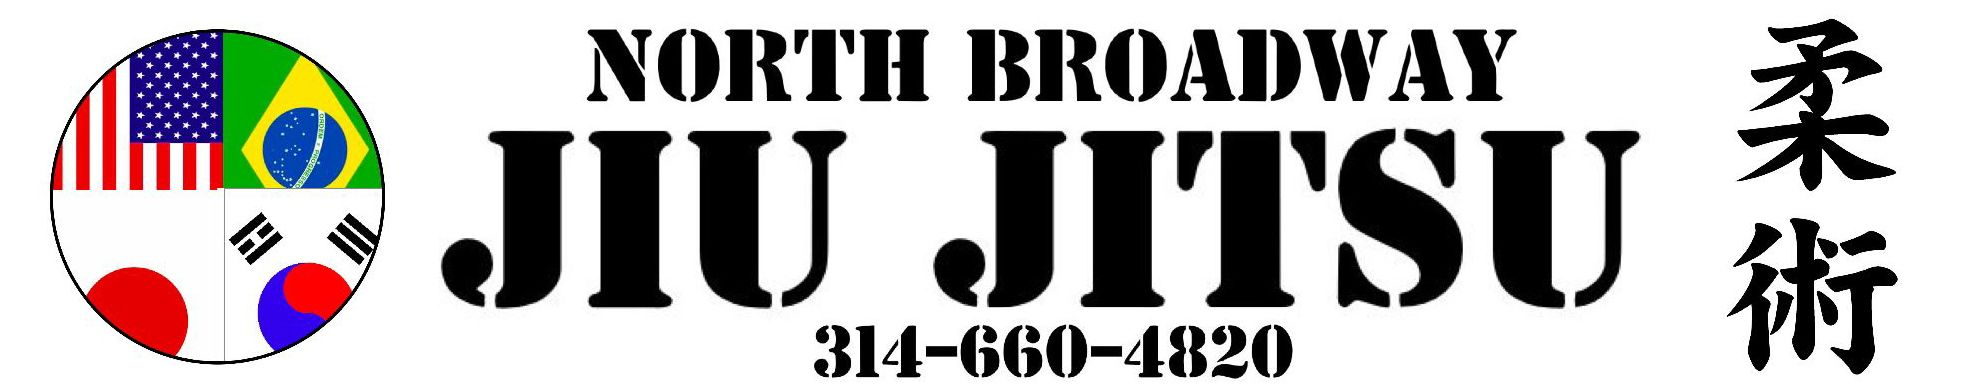 North Broadway Jiu Jitsu & Fitness